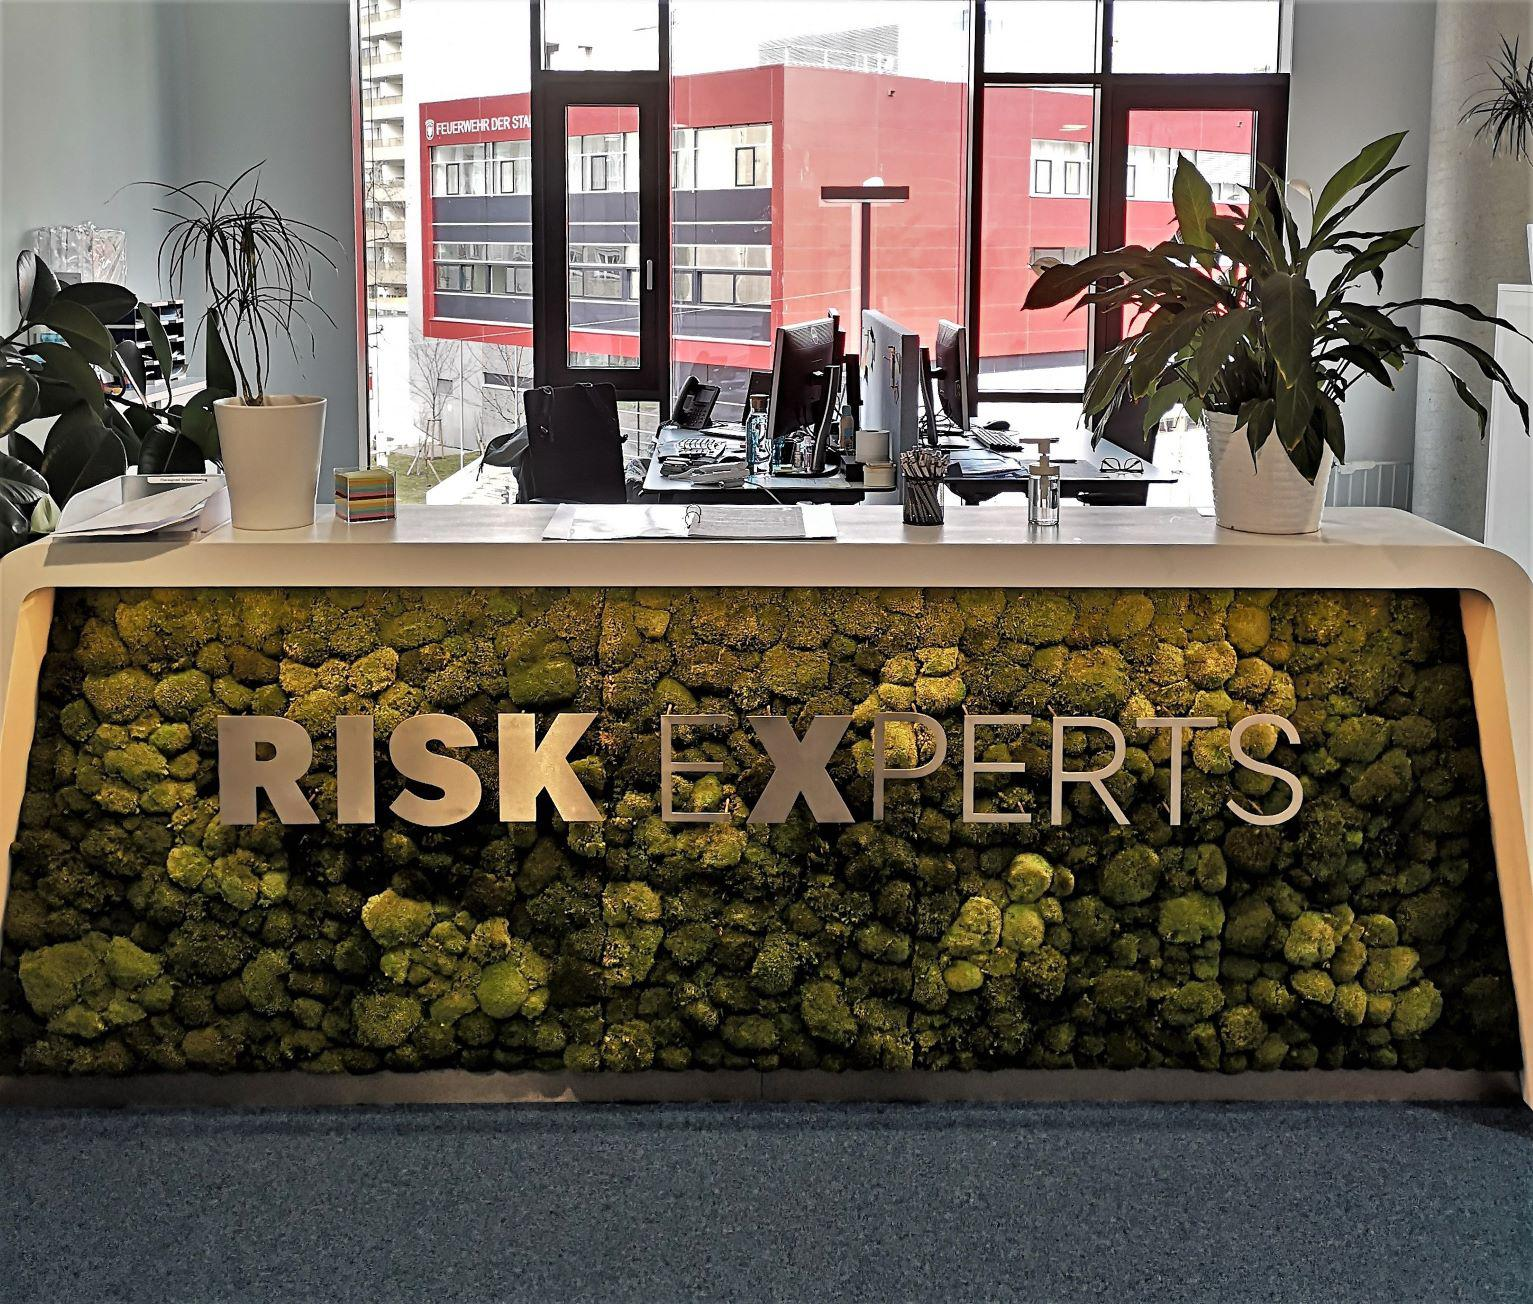 Risk Experts Empfang modern